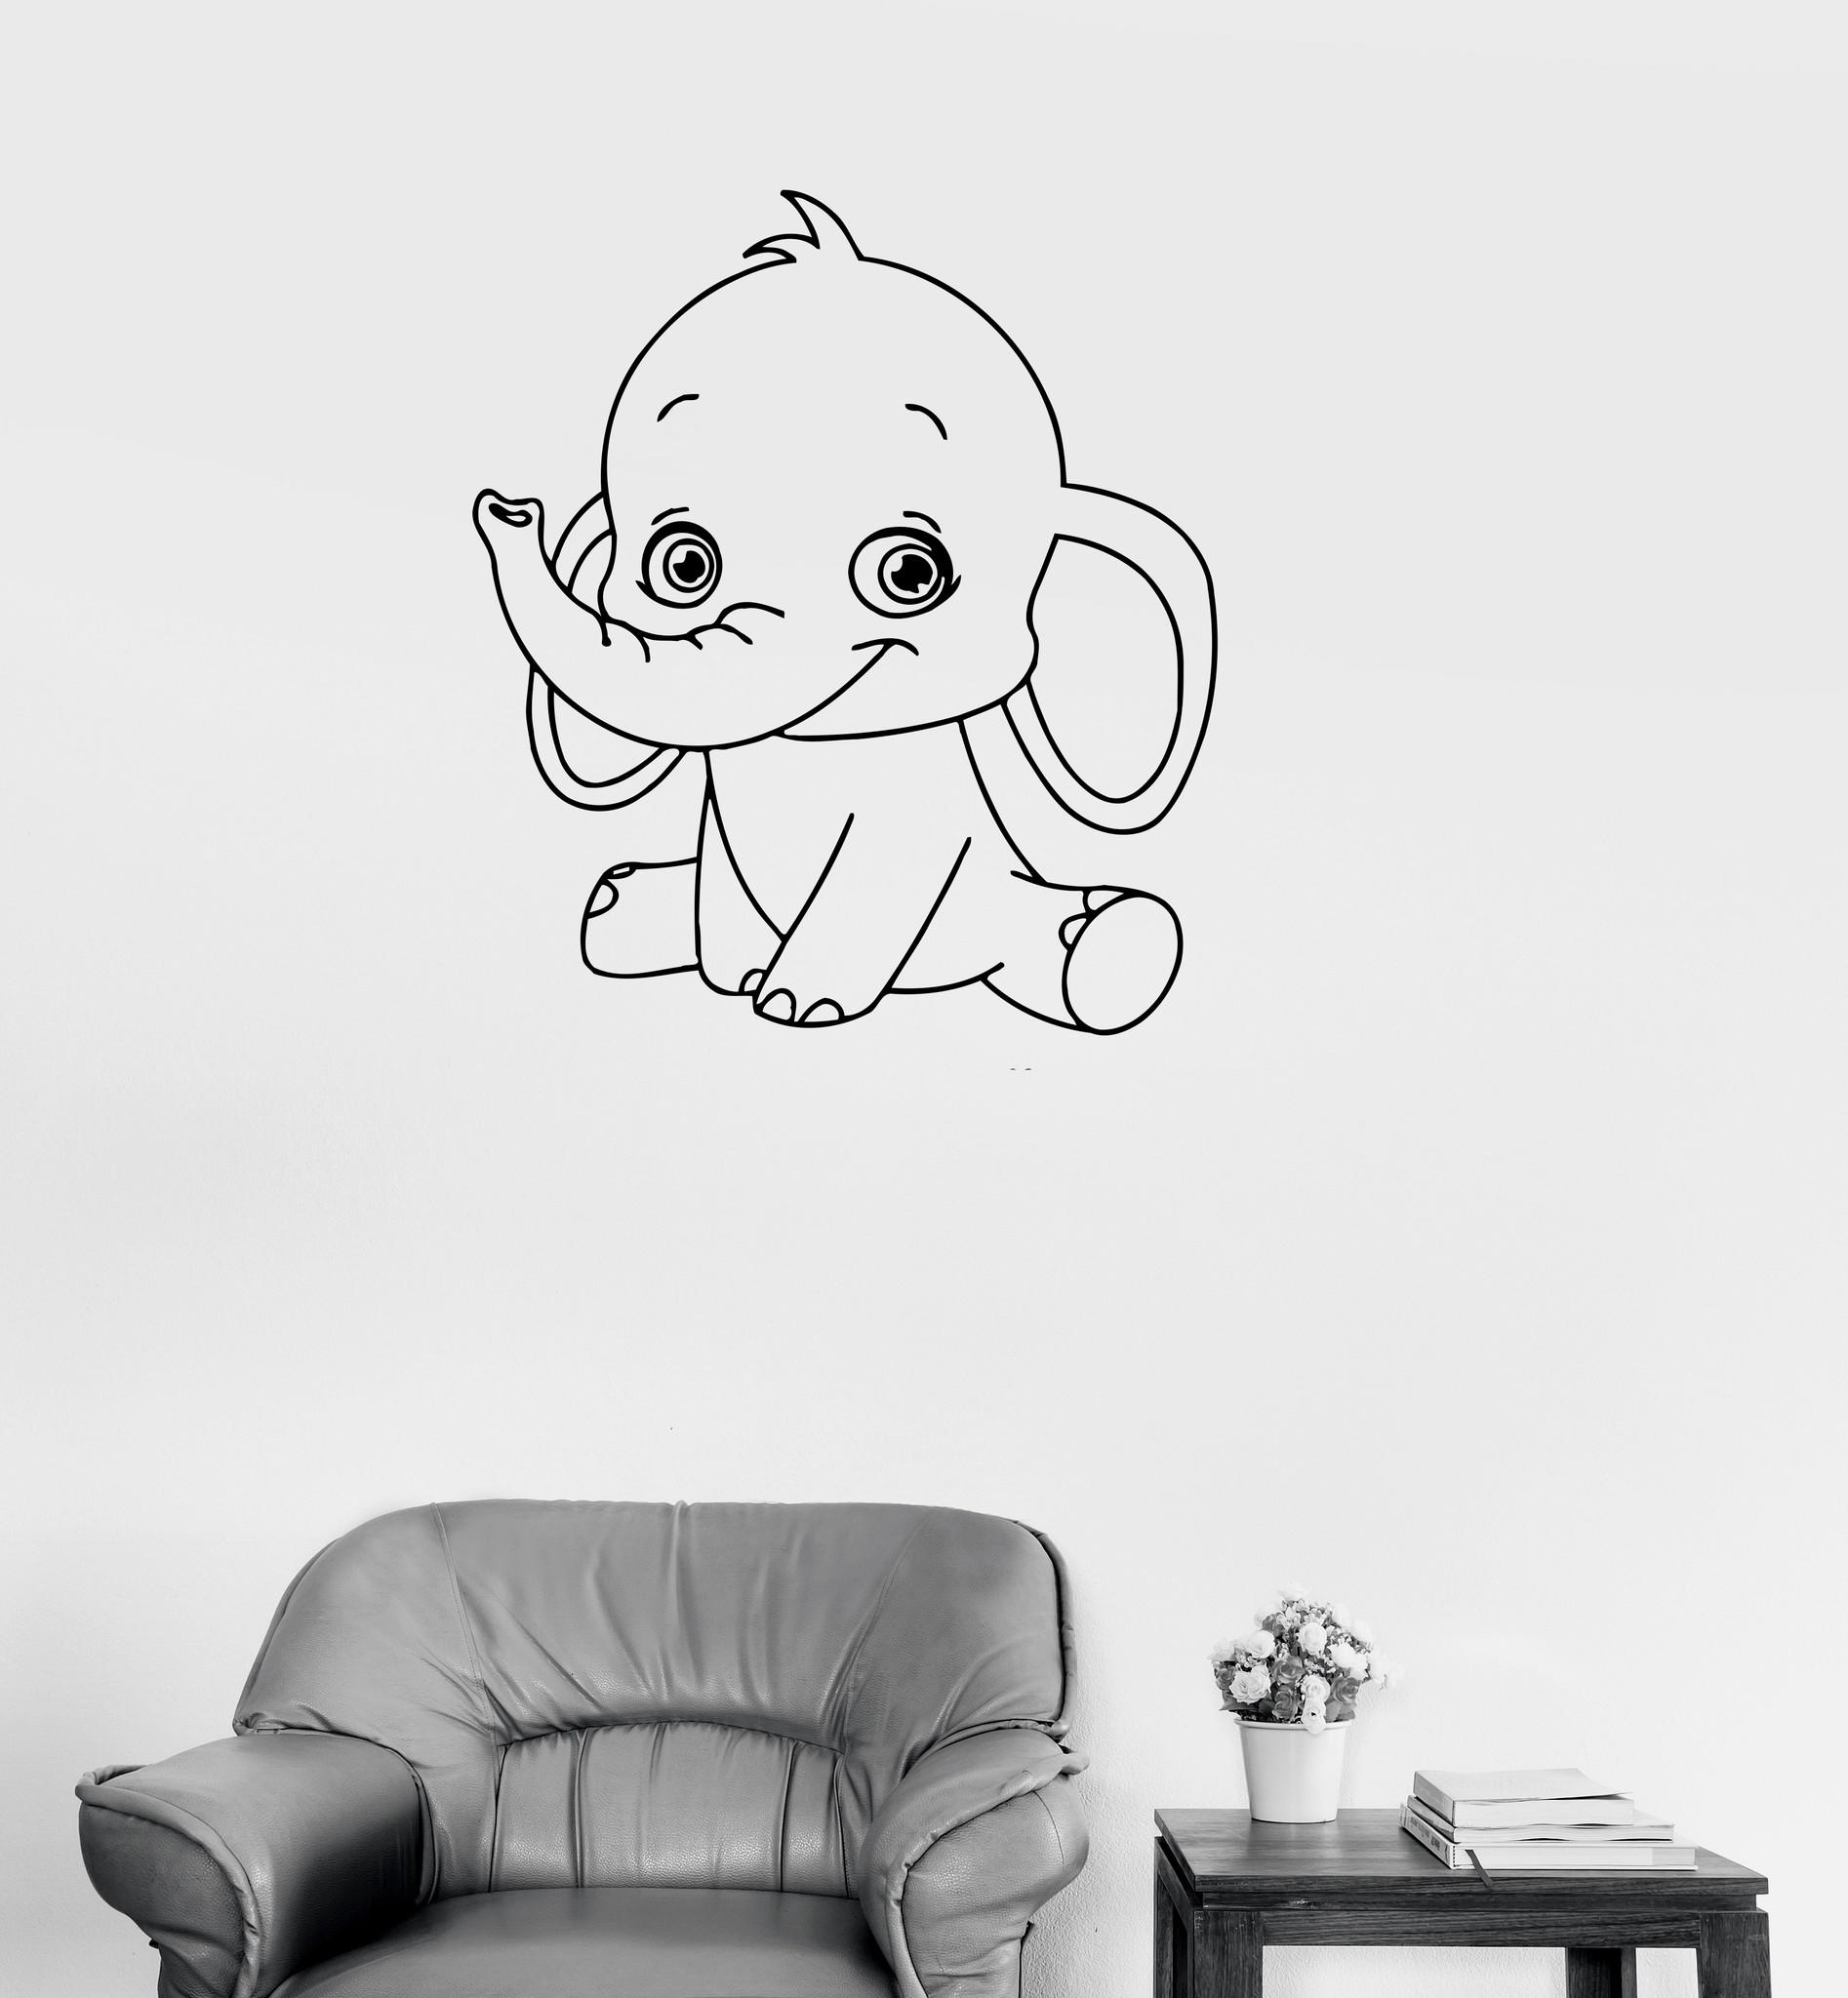 Vinyl Decal Baby Elephant Cute Animal From Wallstickers4you